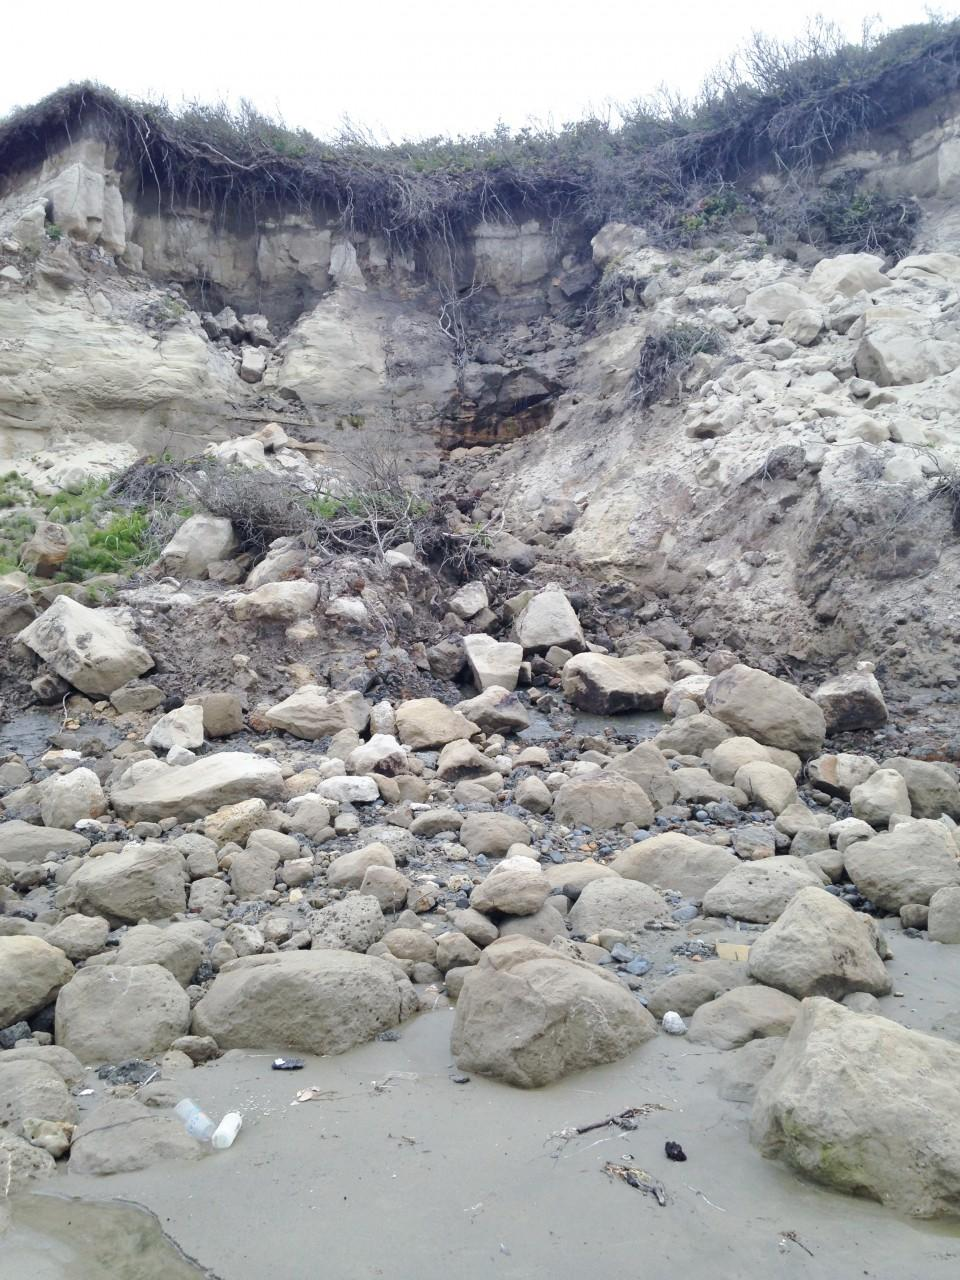 This large bluff erosion area is near the north end of Mile 210. This year there is visible water coming out of the bluff about 2/3 of the way up.